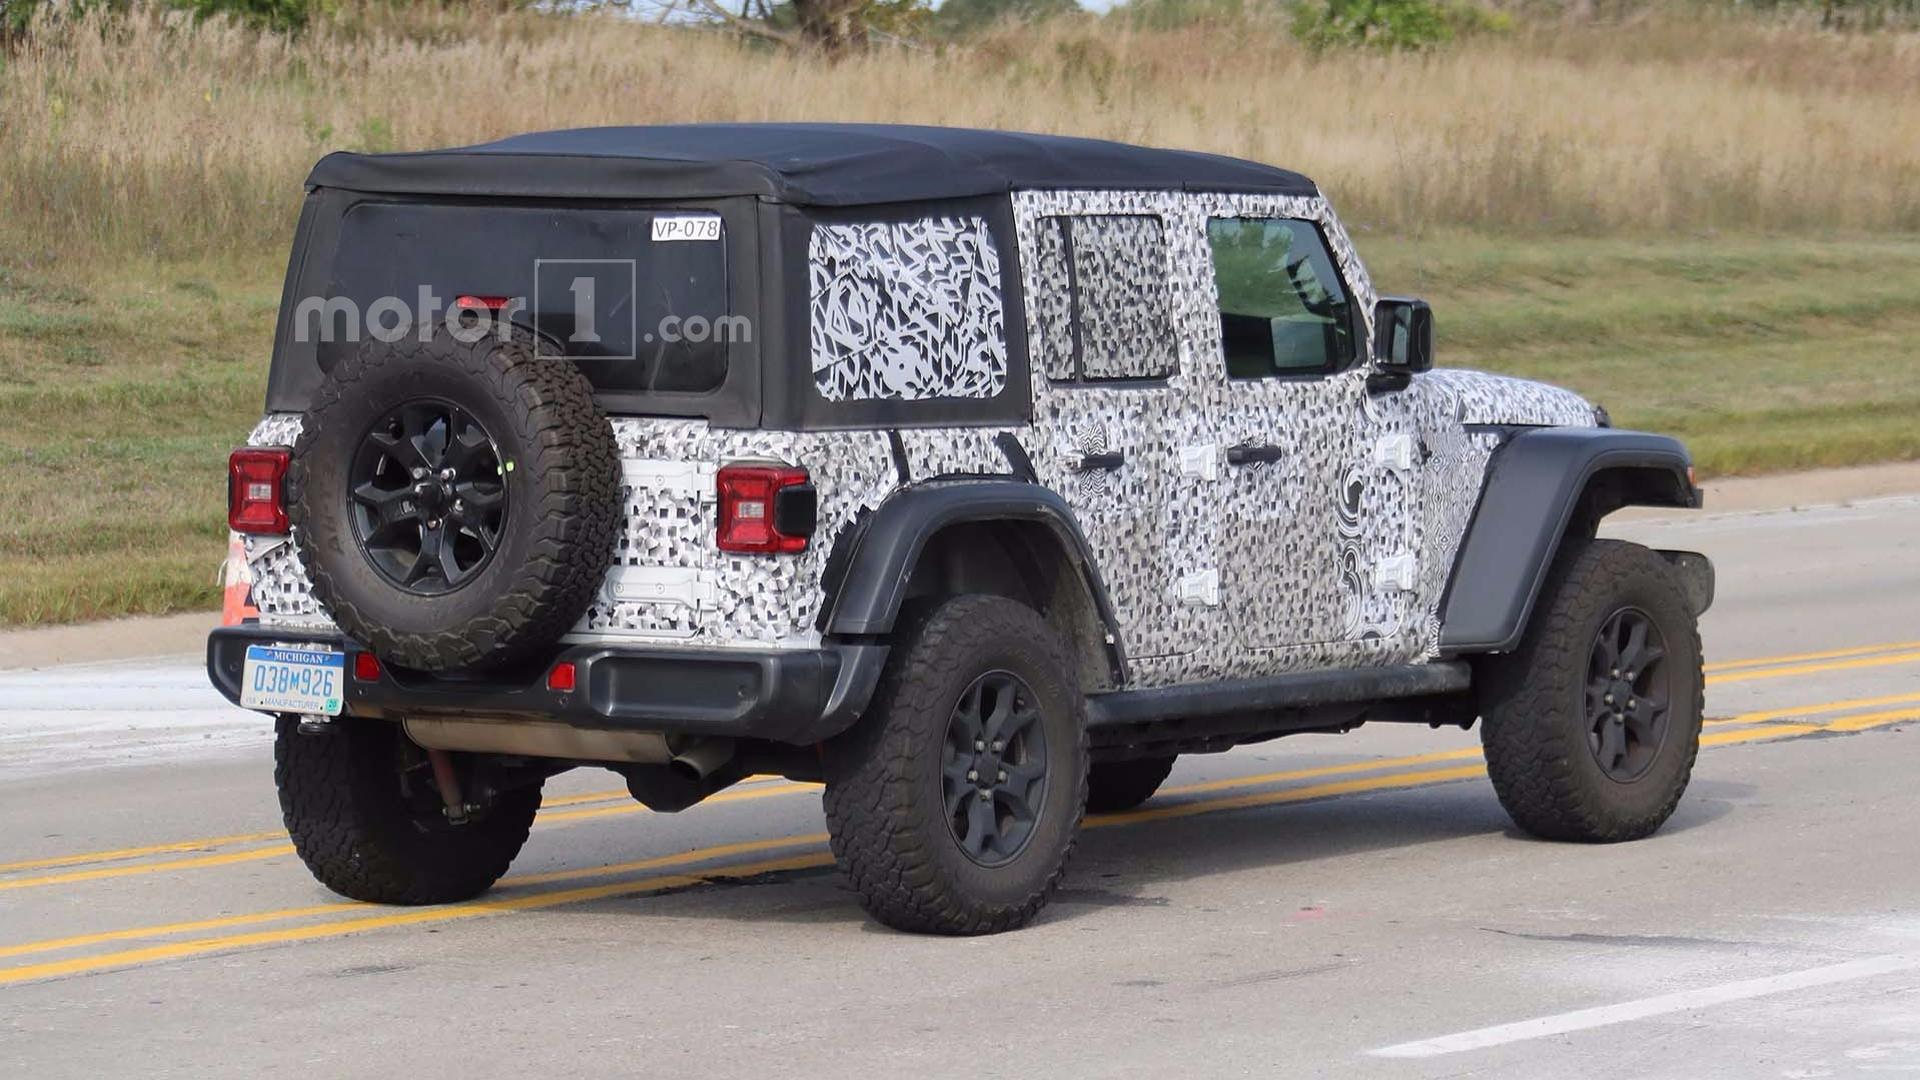 2018 - [Jeep] Wrangler - Page 3 Jeep-wrangler-unlimited-rubicon-spy-photo